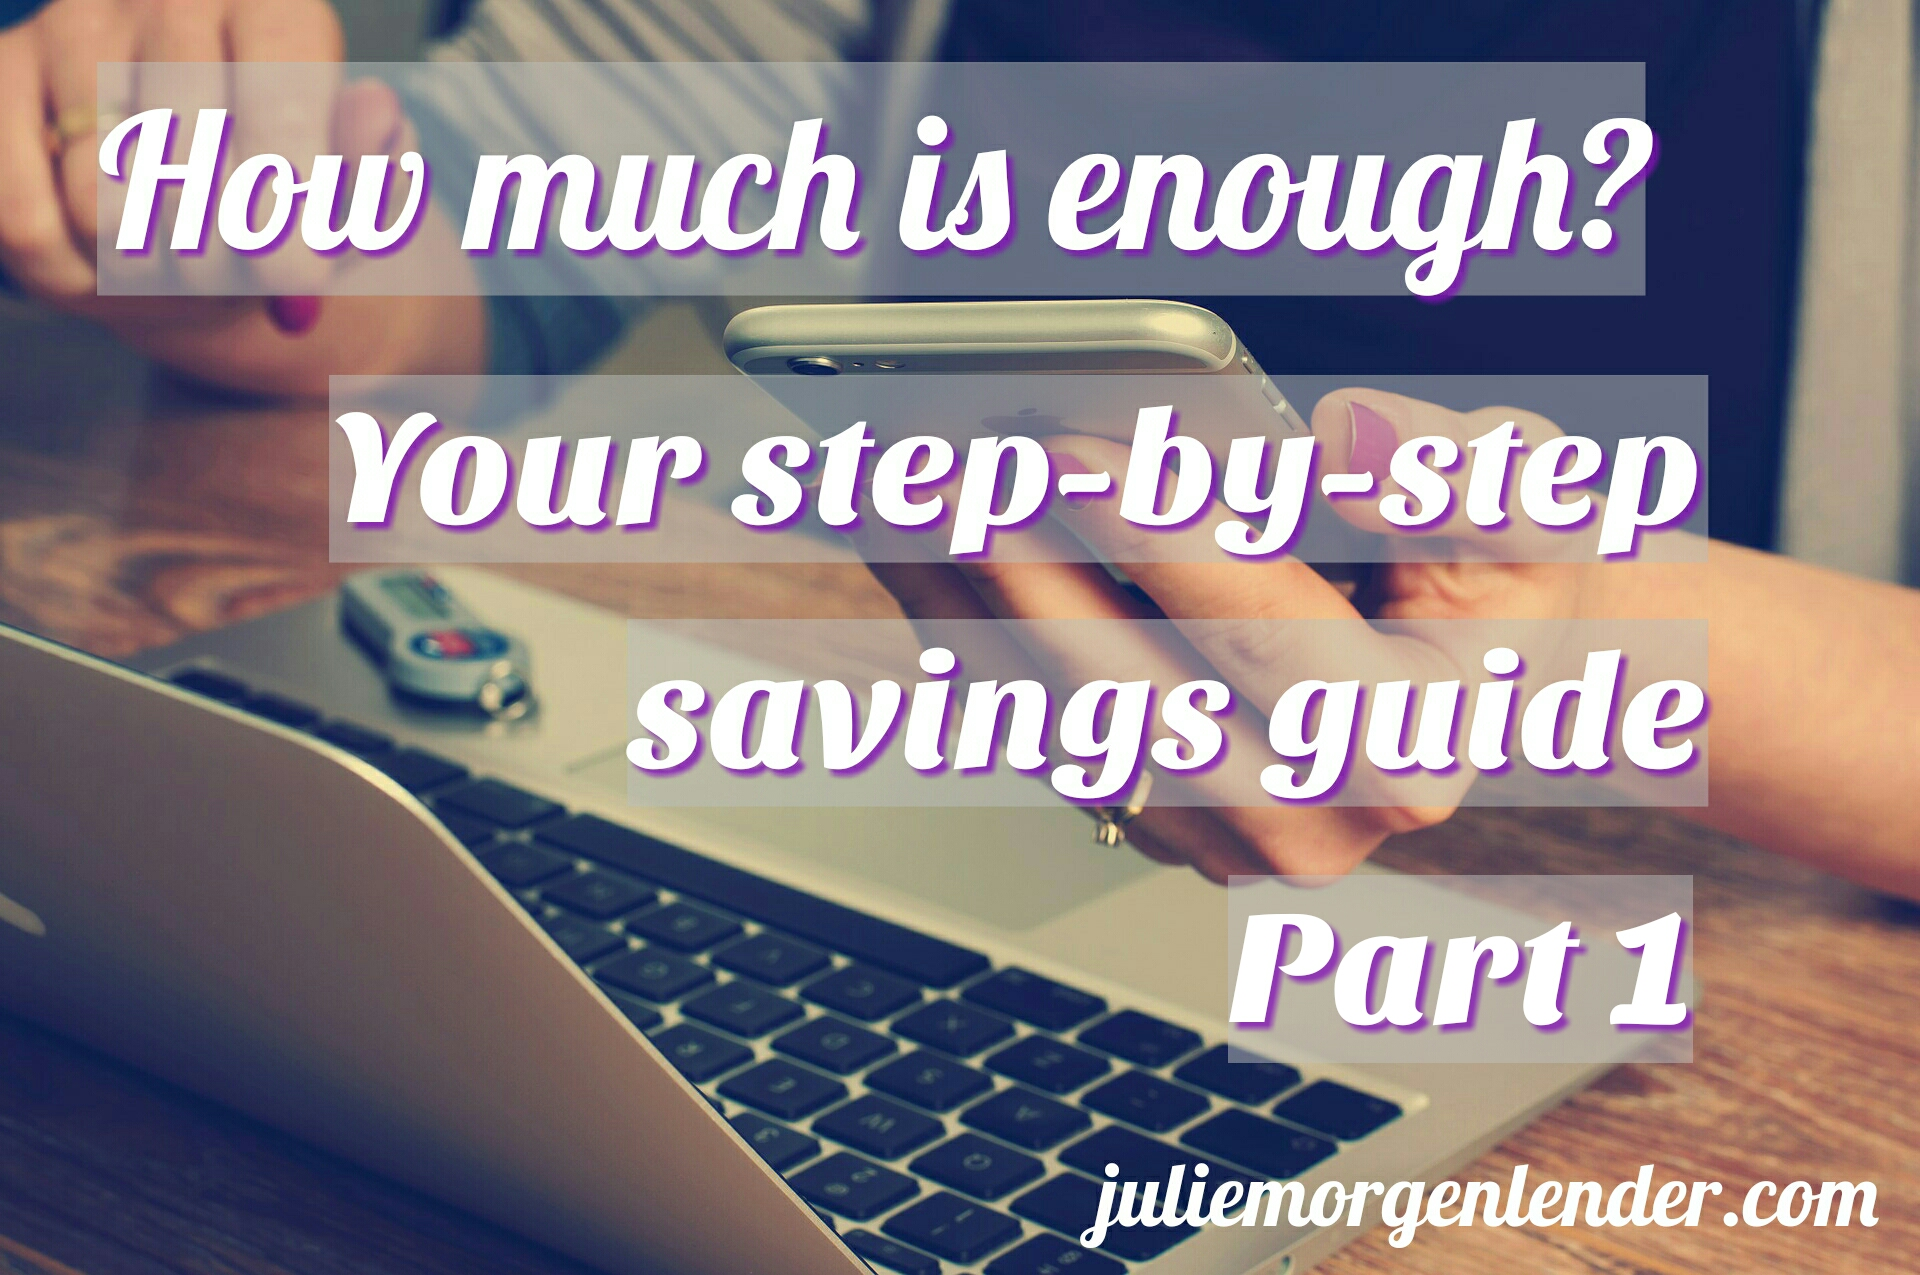 How much is enough: Your step-by-step savings guide Part 1